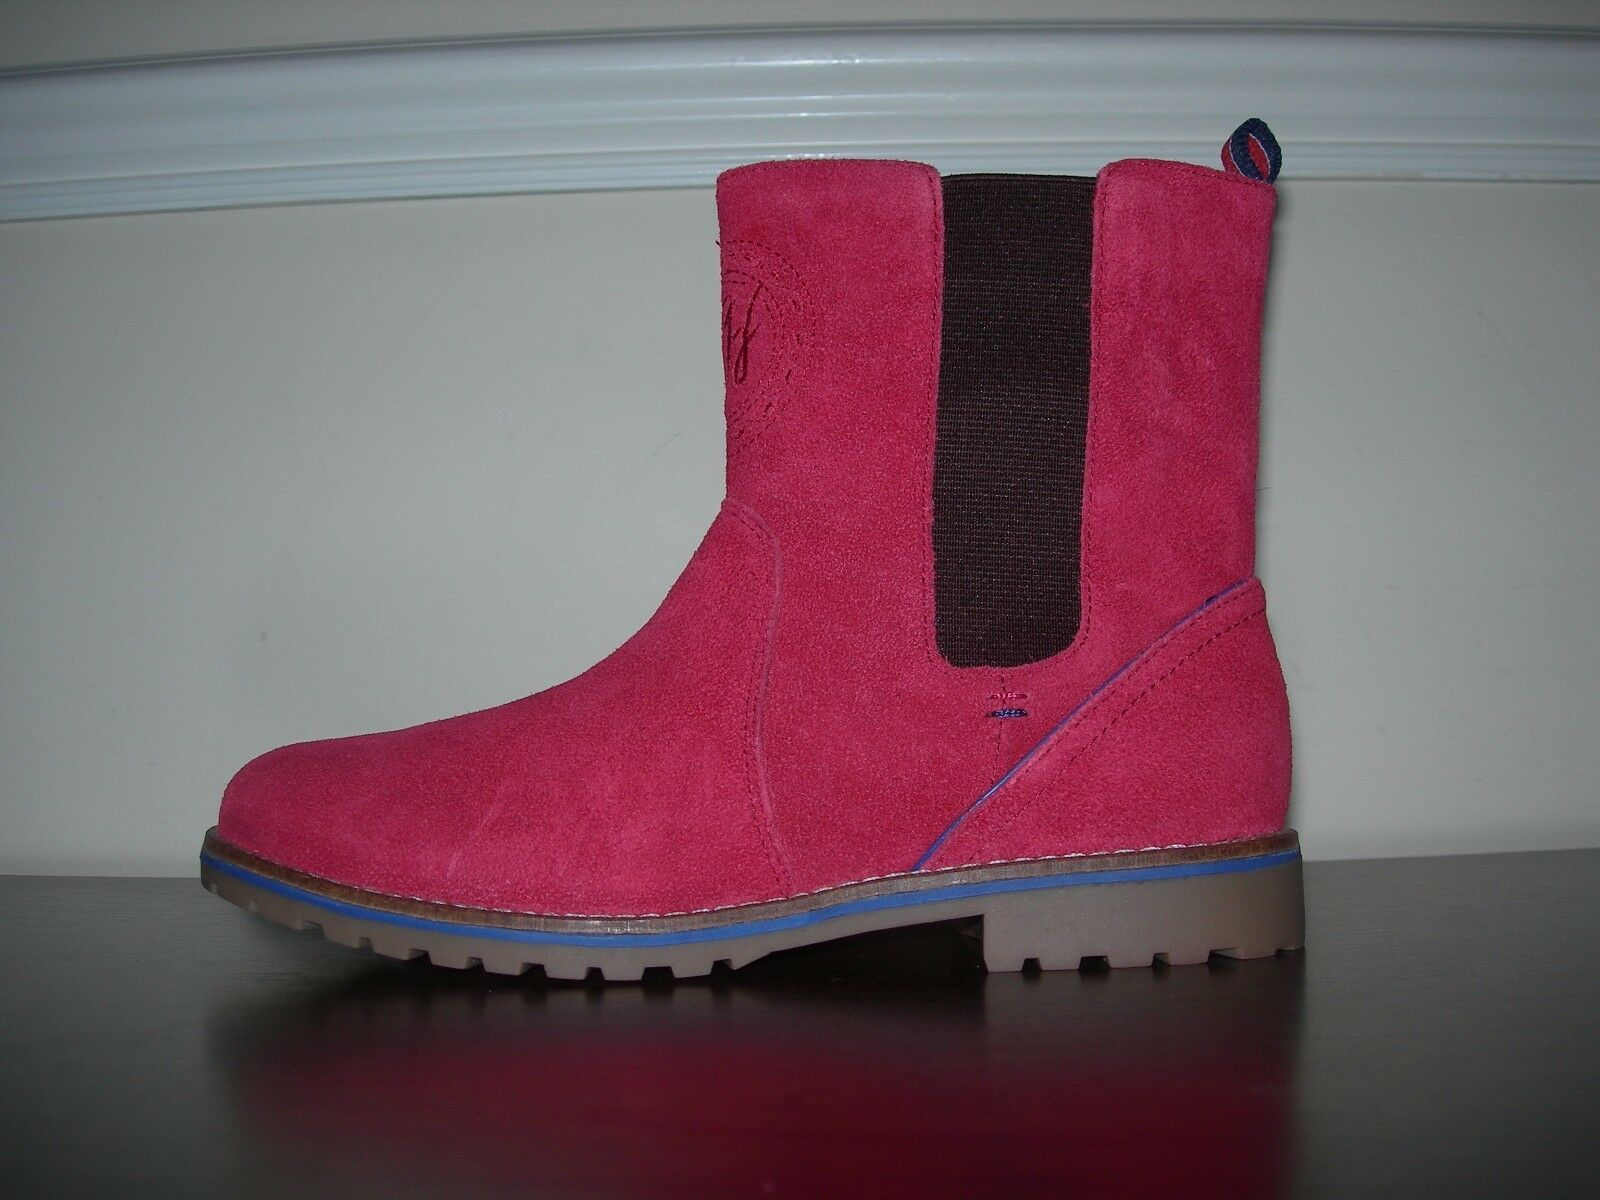 TOMMY HILFIGER WOMEN'S JUNIOR GIRLS ANKLE CHELSEA BOOTS ROT SUEDE EU 35 / UK 2.5